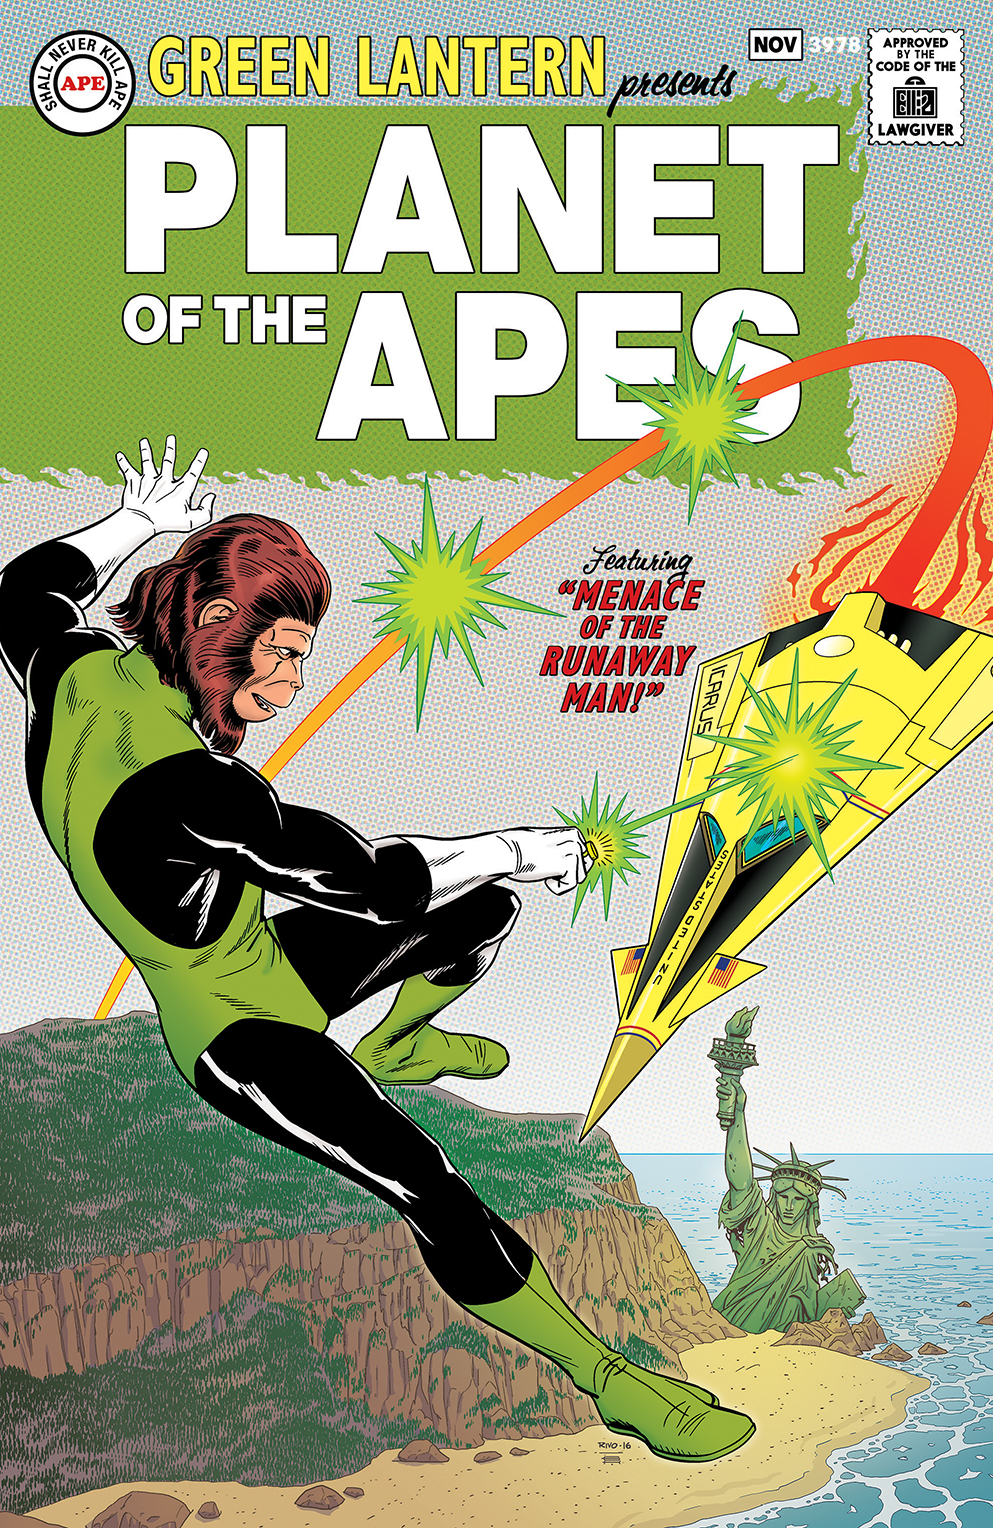 Green Lantern Planet of the Apes cover